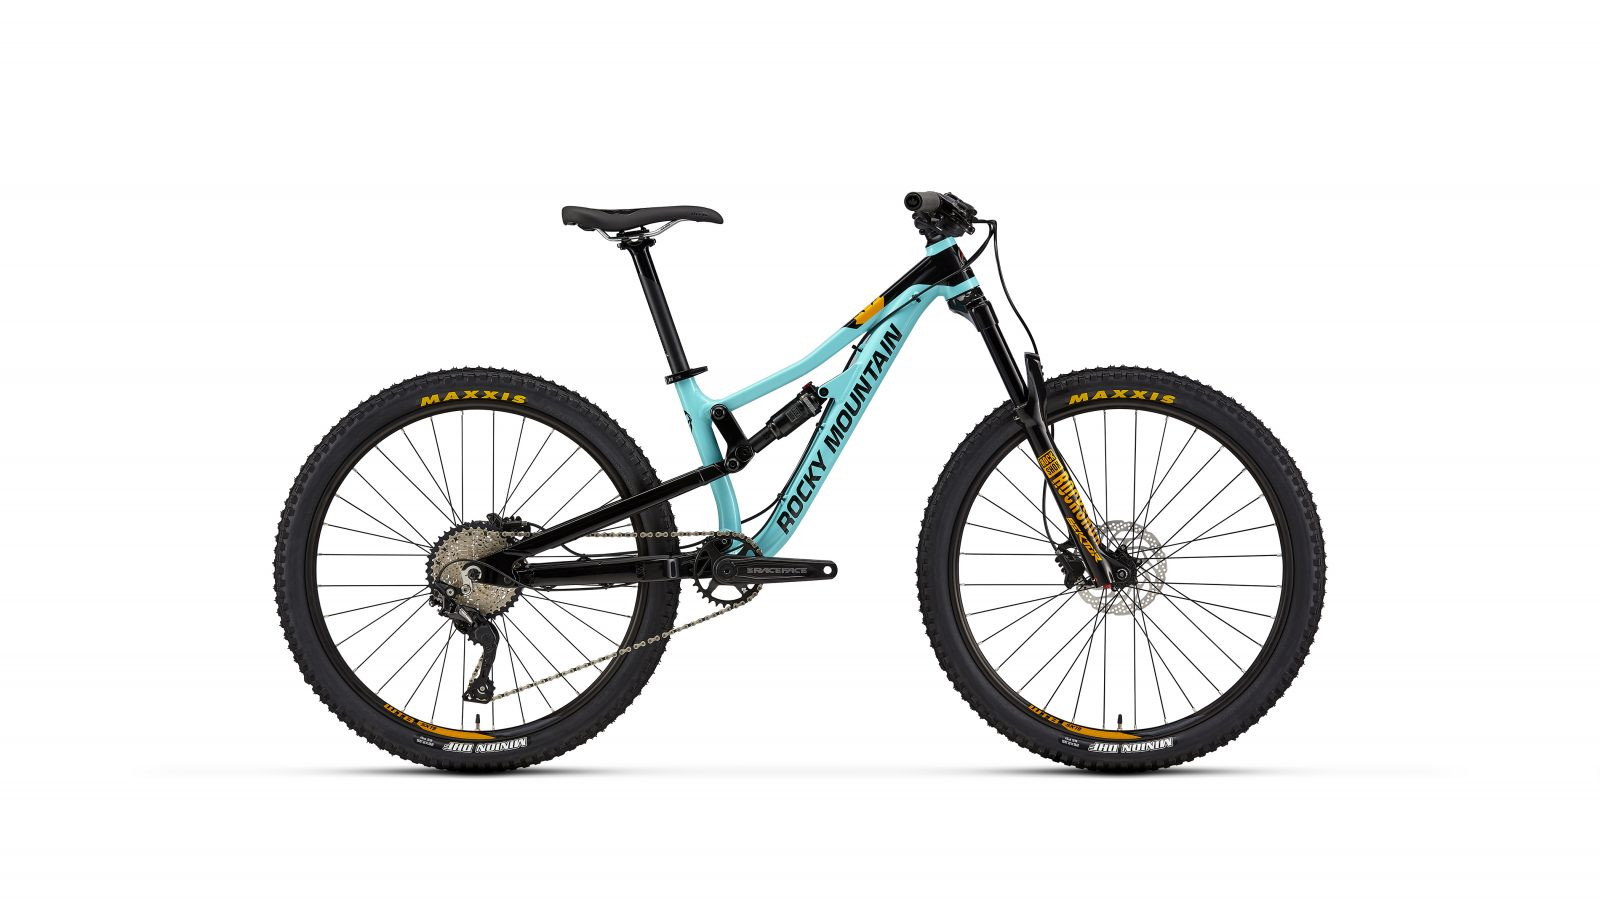 The New Rocky Mountain Reaper